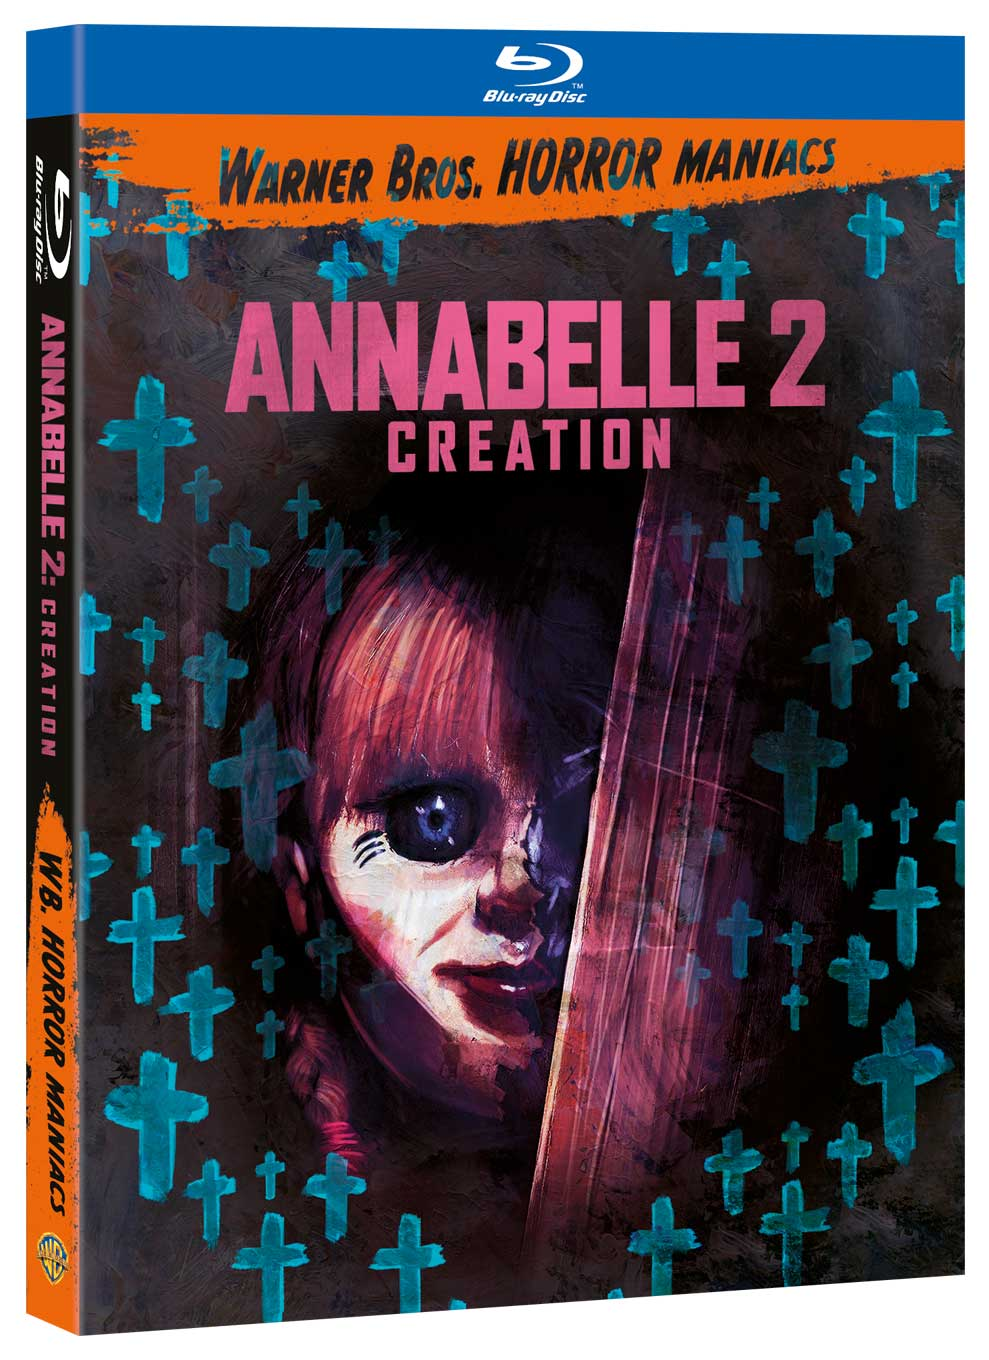 ANNABELLE 2: CREATION (EDIZIONE HORROR MANIACS) - BLU RAY